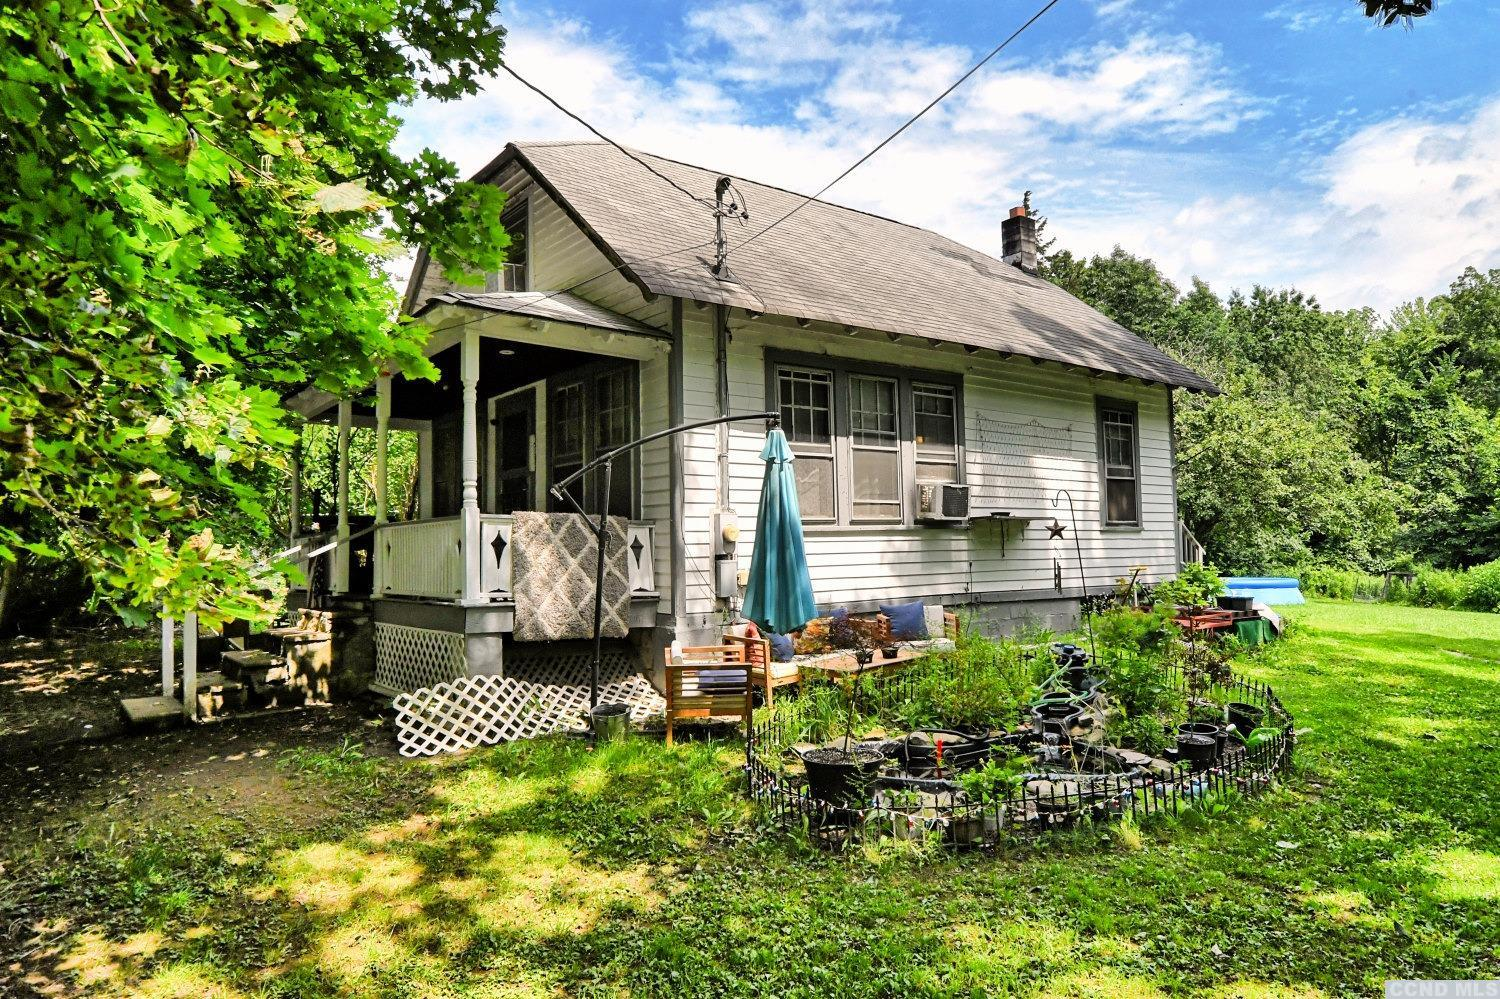 A 3 Bedroom, 1 1/2 Bath Home on 4 Acres with a Cabin & a 2 Car Garage! On the 1st floor, the home features 2 bedrooms, a living room, a kitchen, & a full bath. On the 2nd floor, the home features 1 bedroom and a 1/2 bath. The home has a front covered porch, spacious side and rear yards, a 2 car detached garage, a cabin or a shed, and a small seasonal stream. Please view our 3D virtual tour of the home and property.